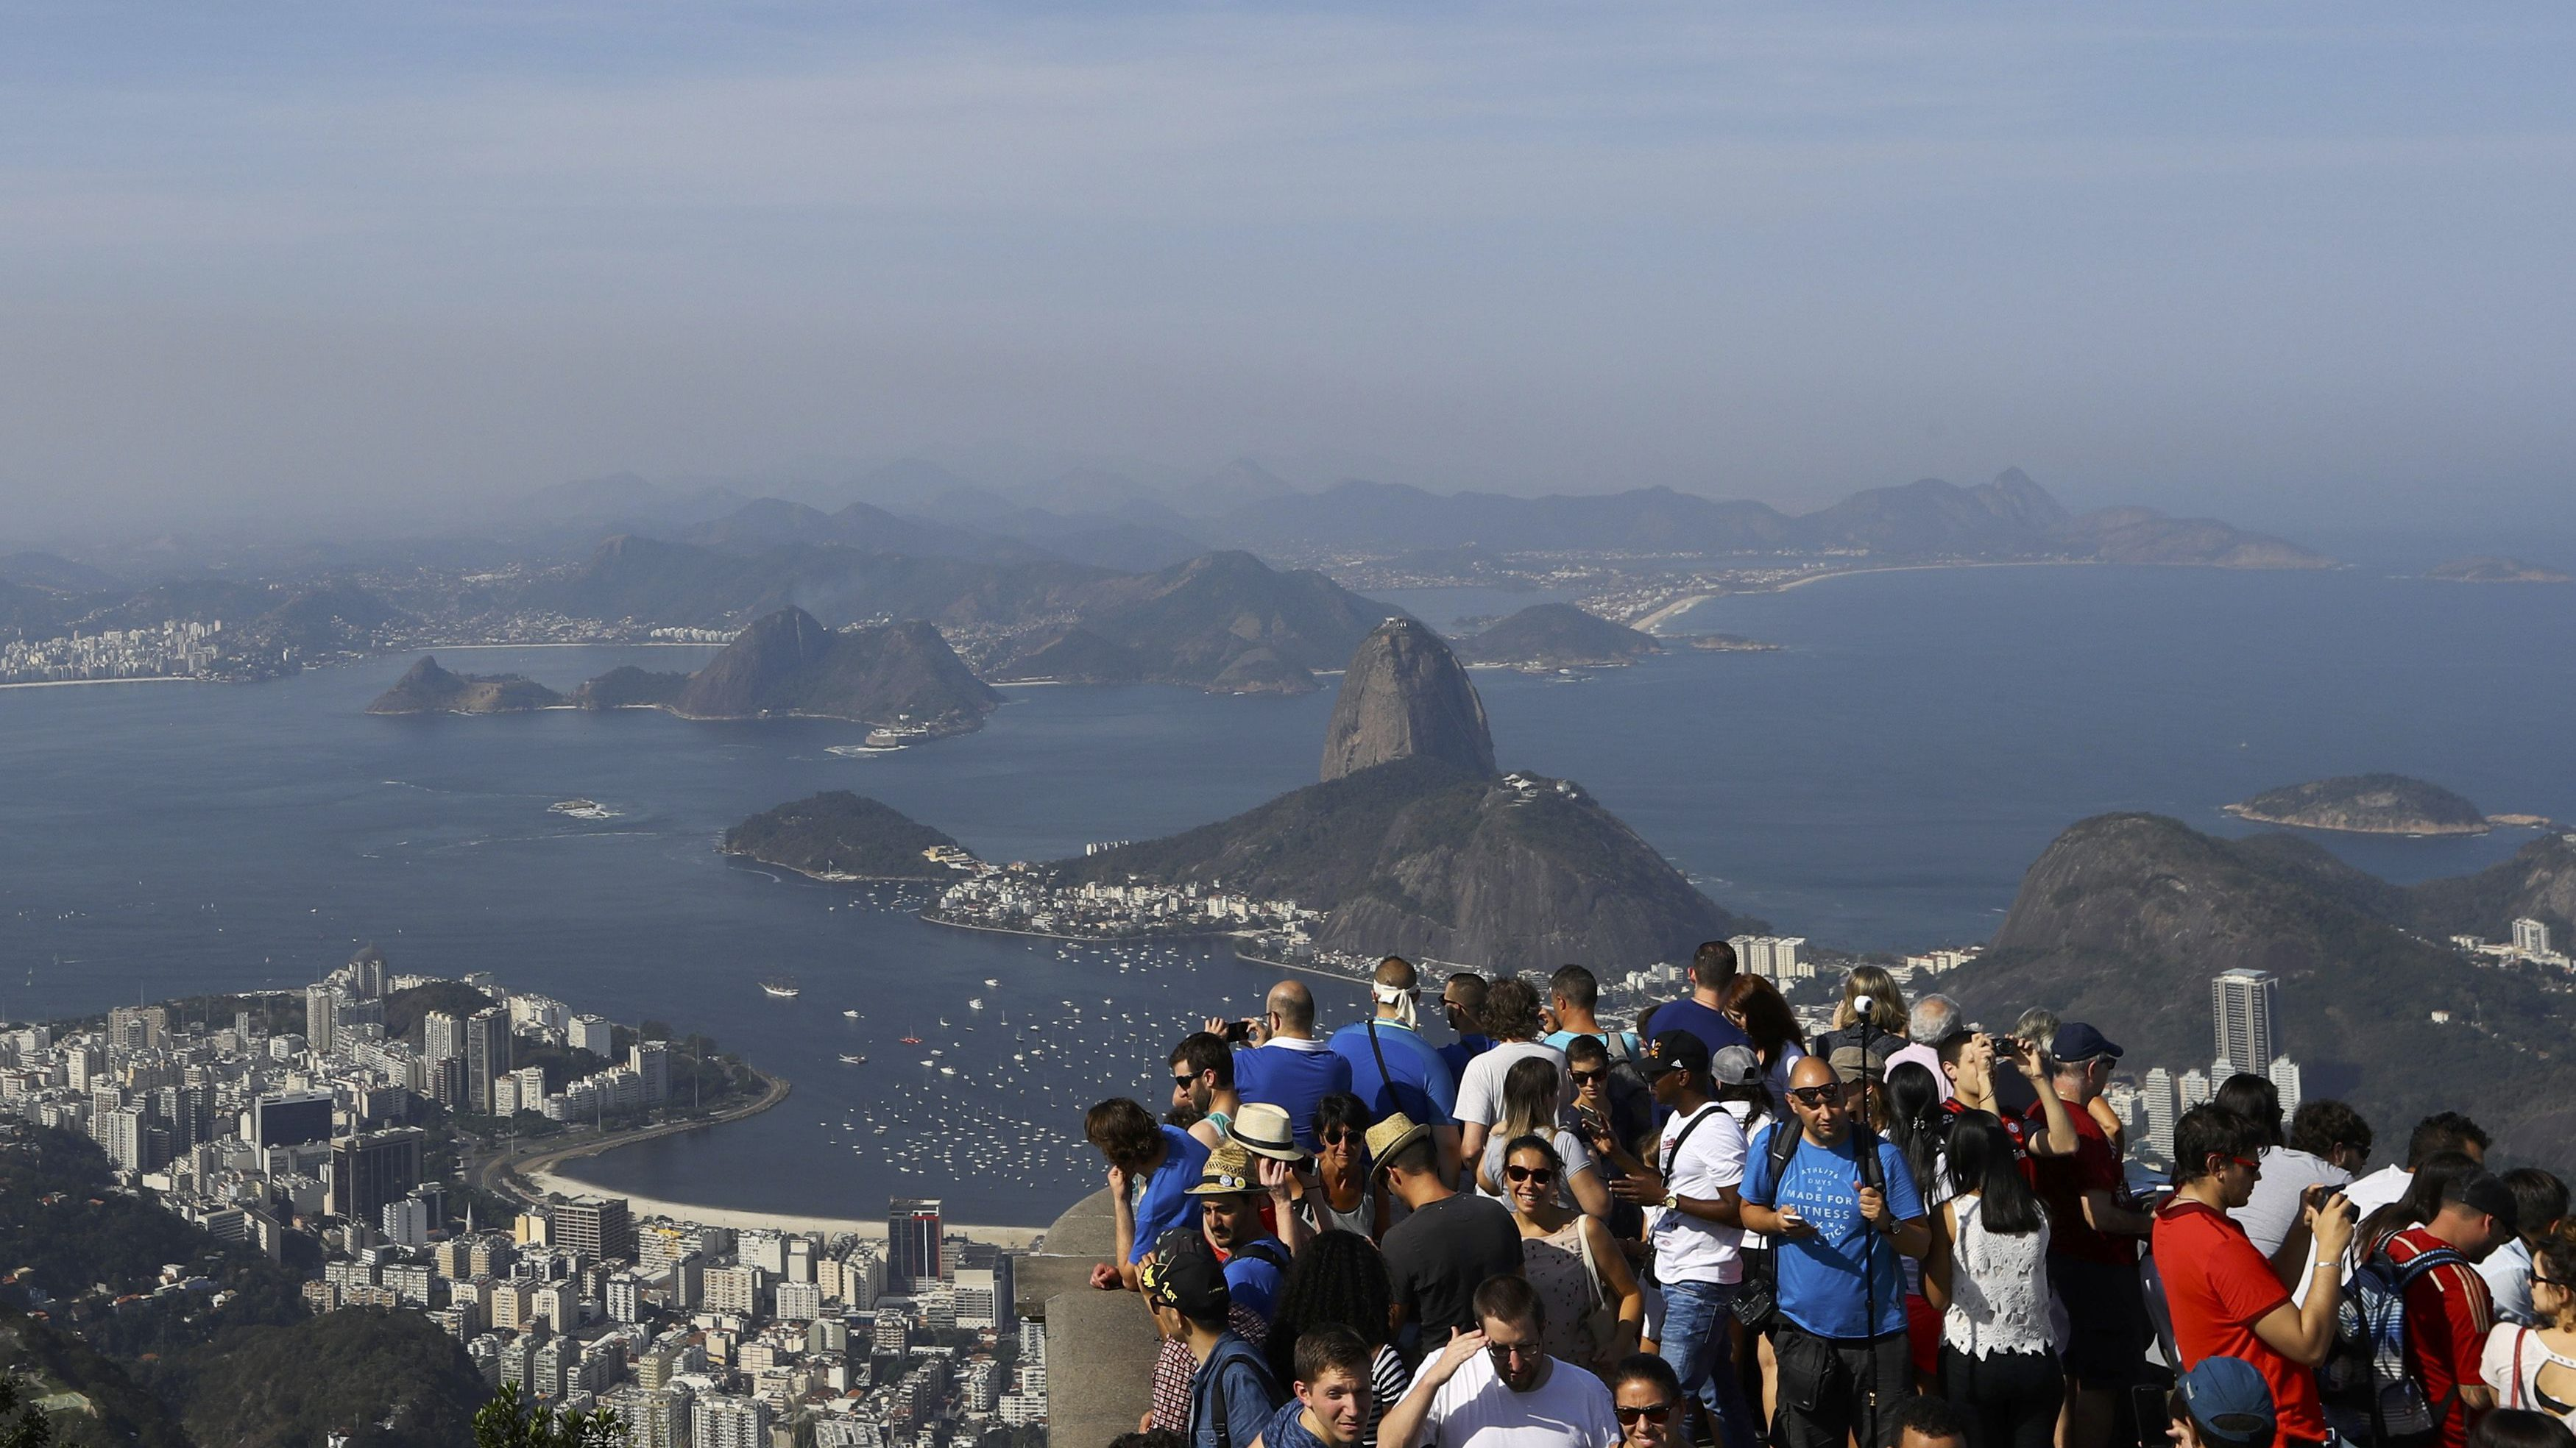 Tourists visit the Christ the Redeemer statue in Rio de Janeiro, Brazil August 6, 2016.